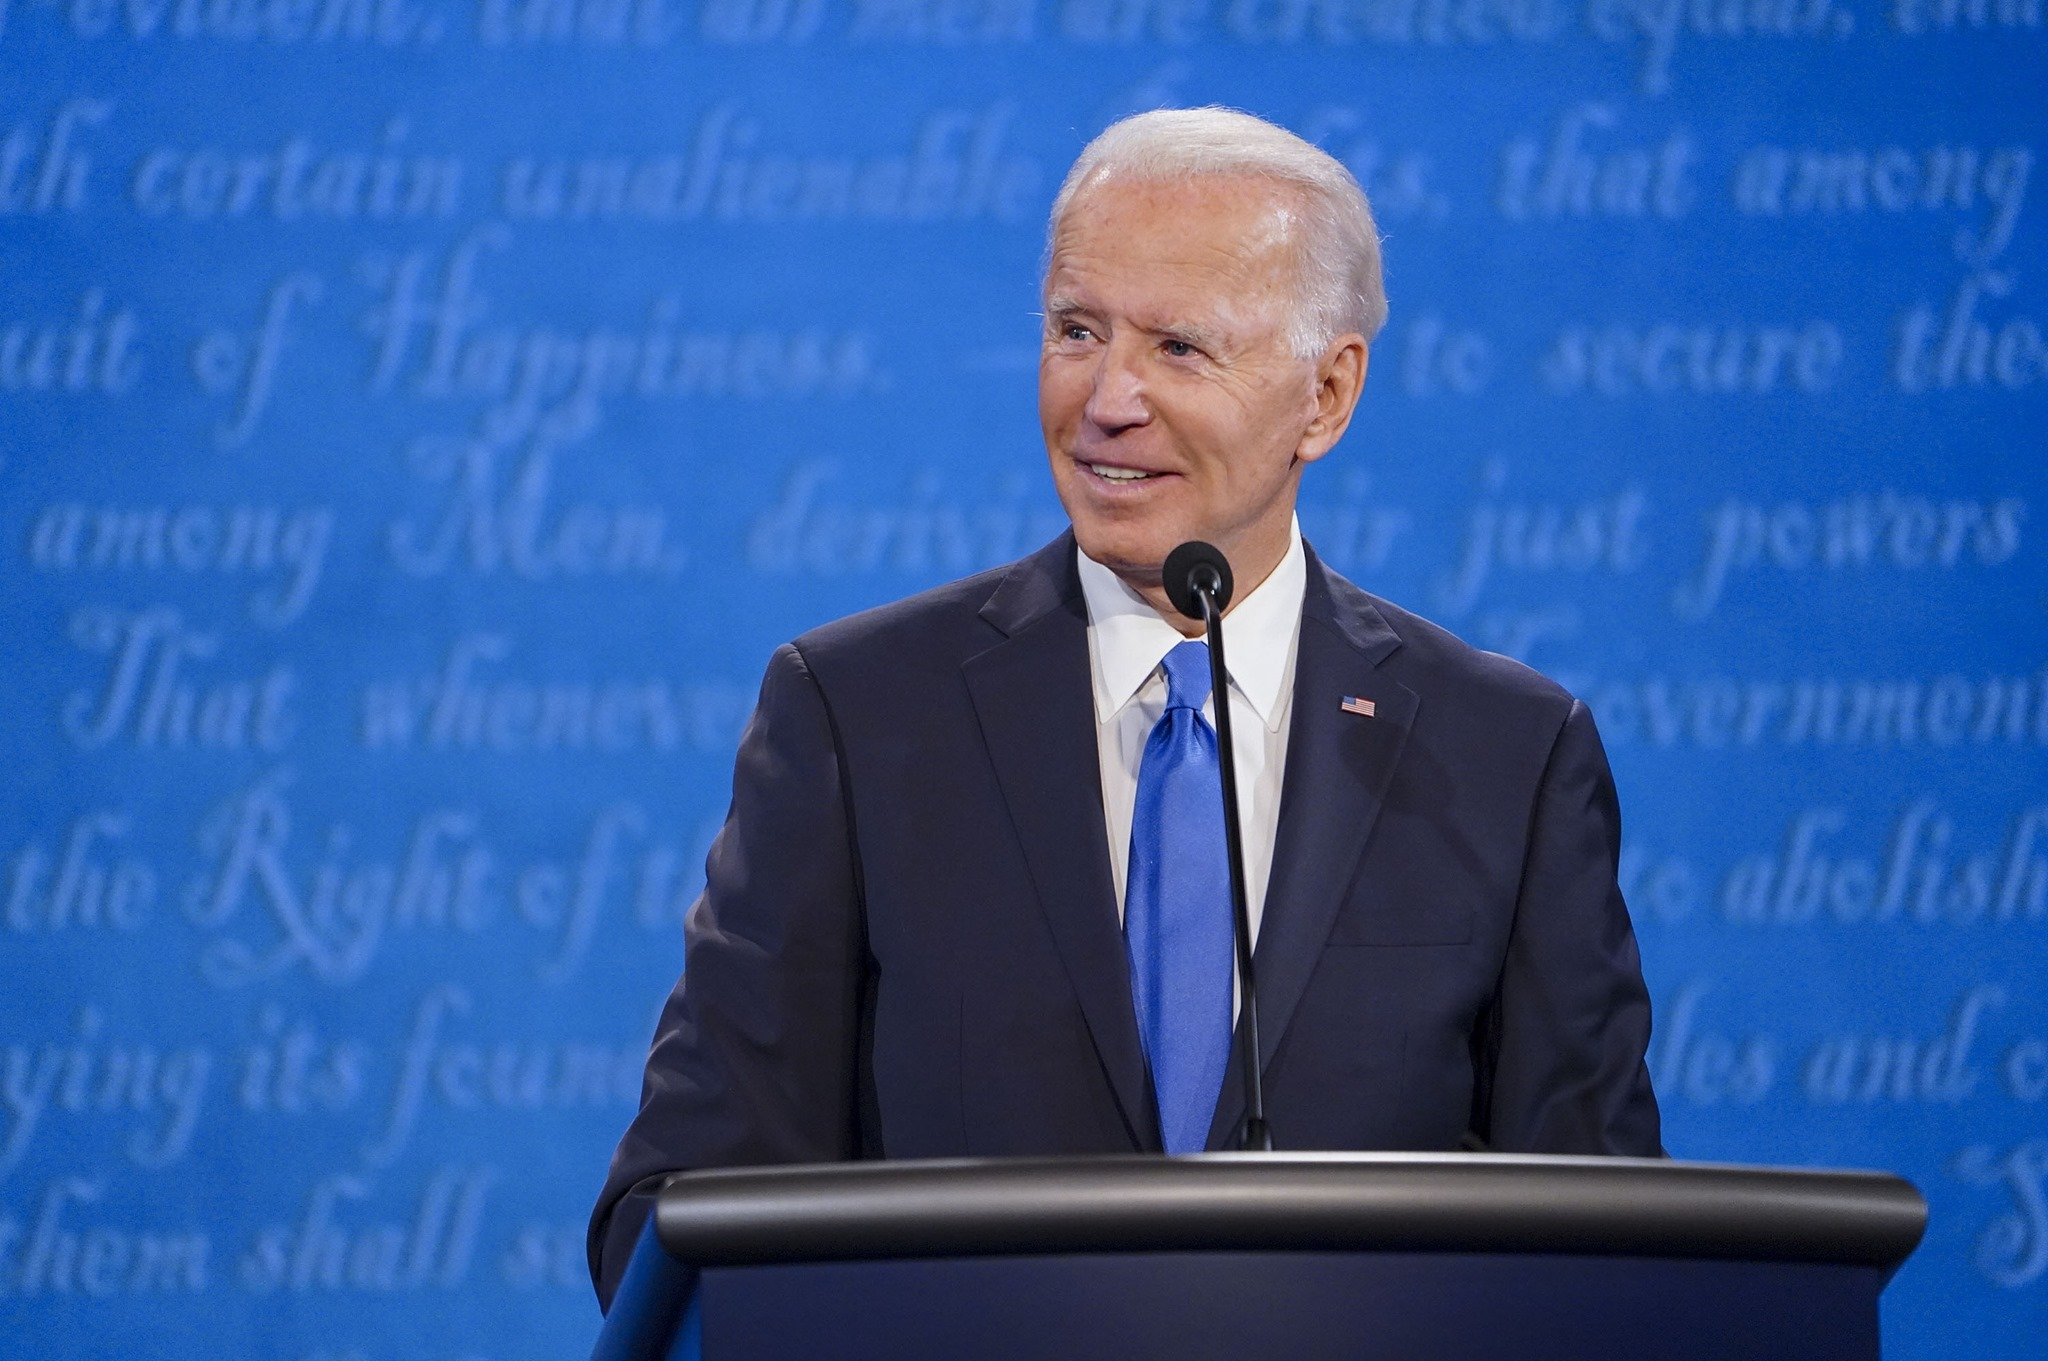 Climate Partnership to be 'core pillar' of US-India relations: Biden